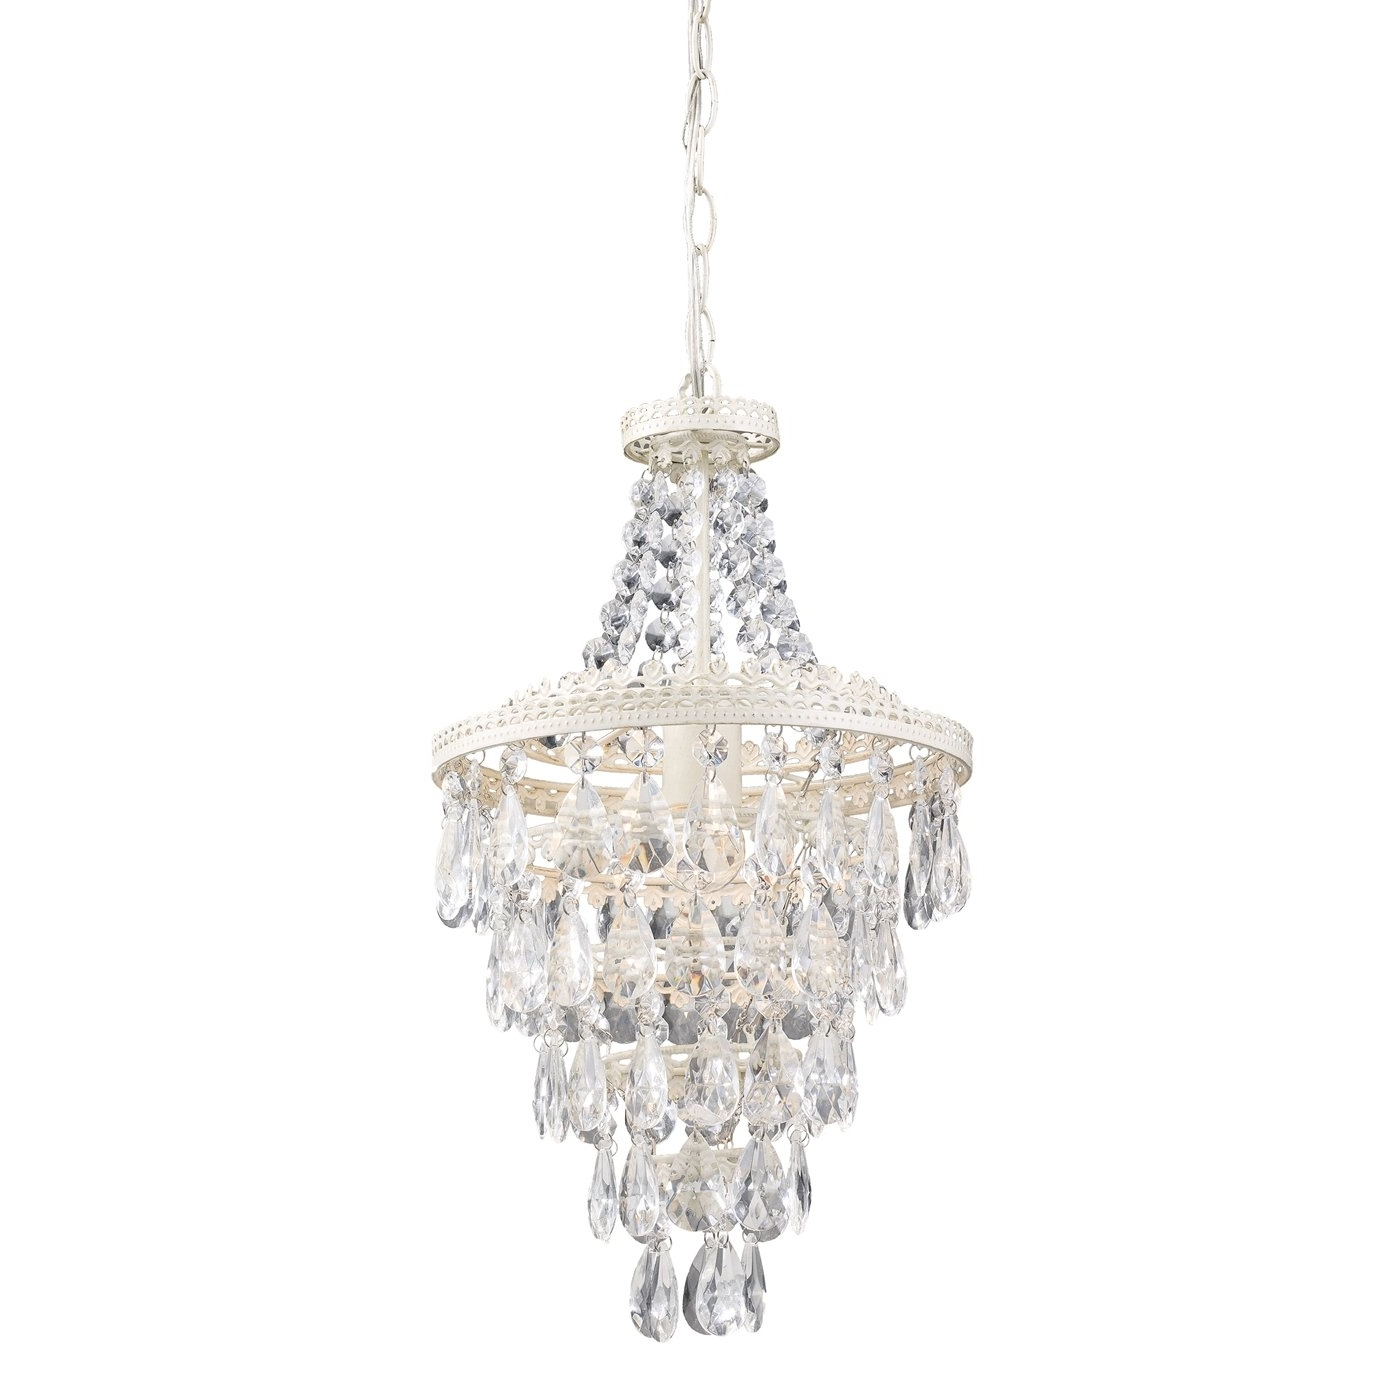 Trendy Chandeliers Design : Amazing Mini Crystal Chandelier Bathroom Regarding Mini Crystal Chandeliers (View 20 of 20)